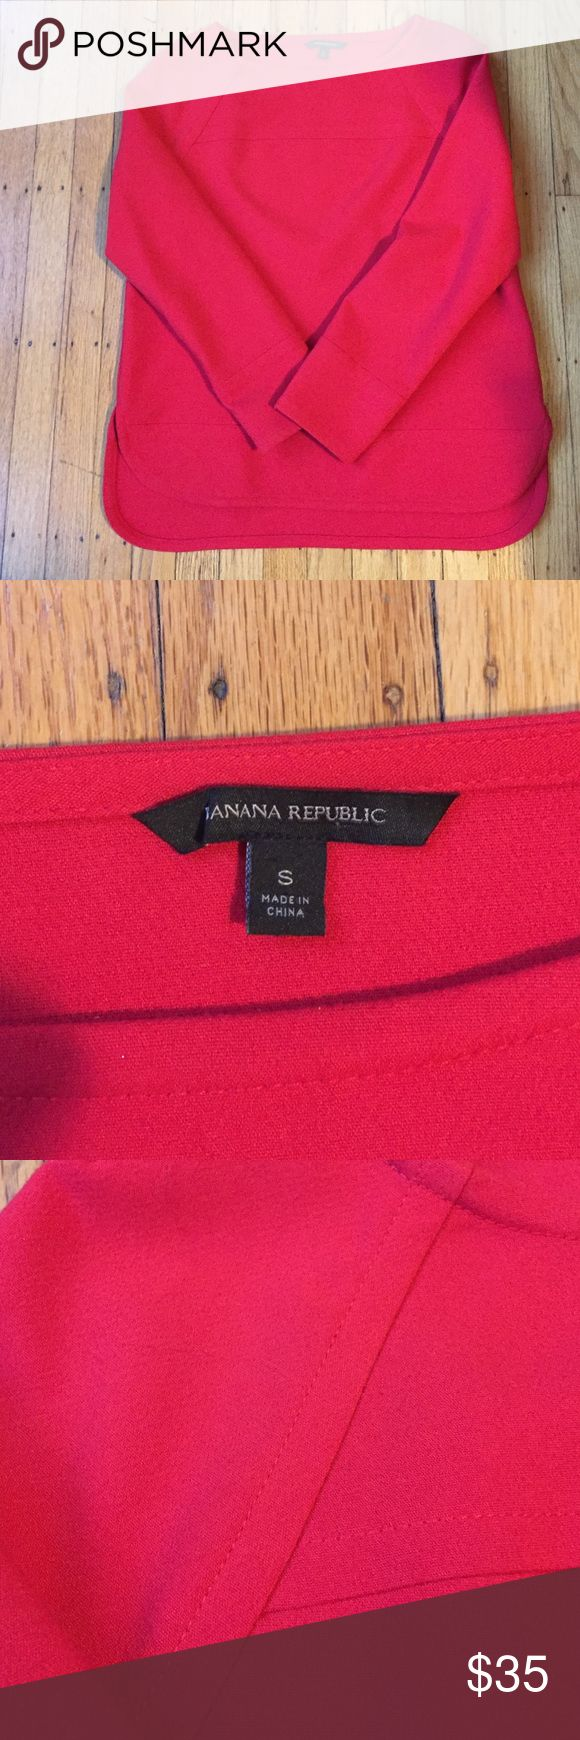 Beautiful Banana Republic top - great fit & color! EUC Banana Republic top. Great color, boatneck, and slightly longer back hem all come together to make it a great look that is also really comfortable! Please let me know if you have any questions and thanks for visiting my closet! Banana Republic Tops